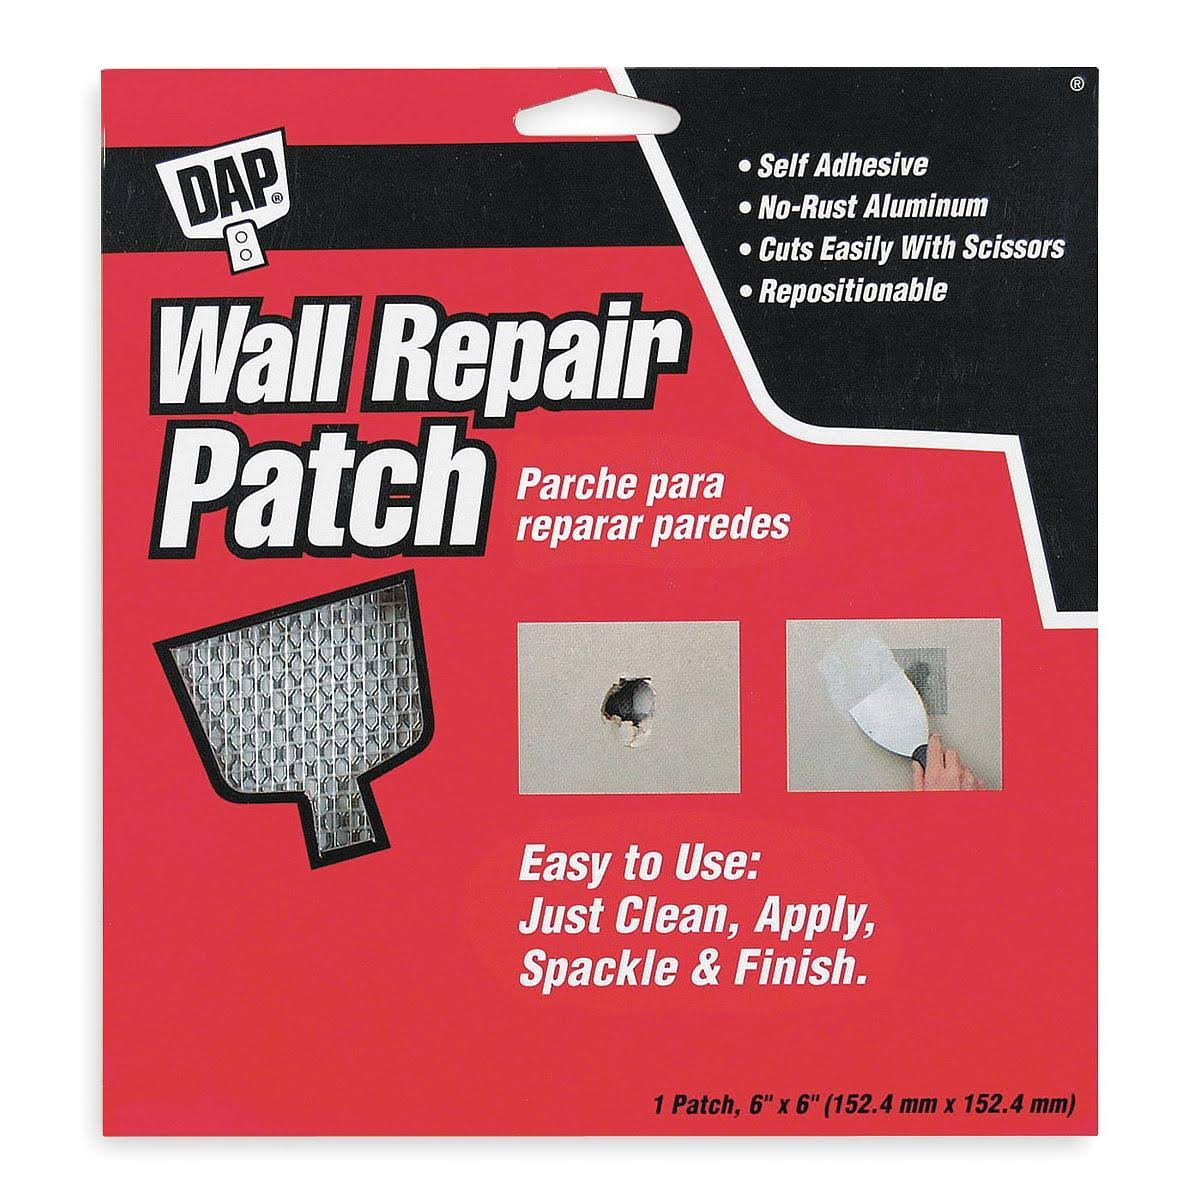 "Dap Wall Repair Patch - 6"" x 6"""